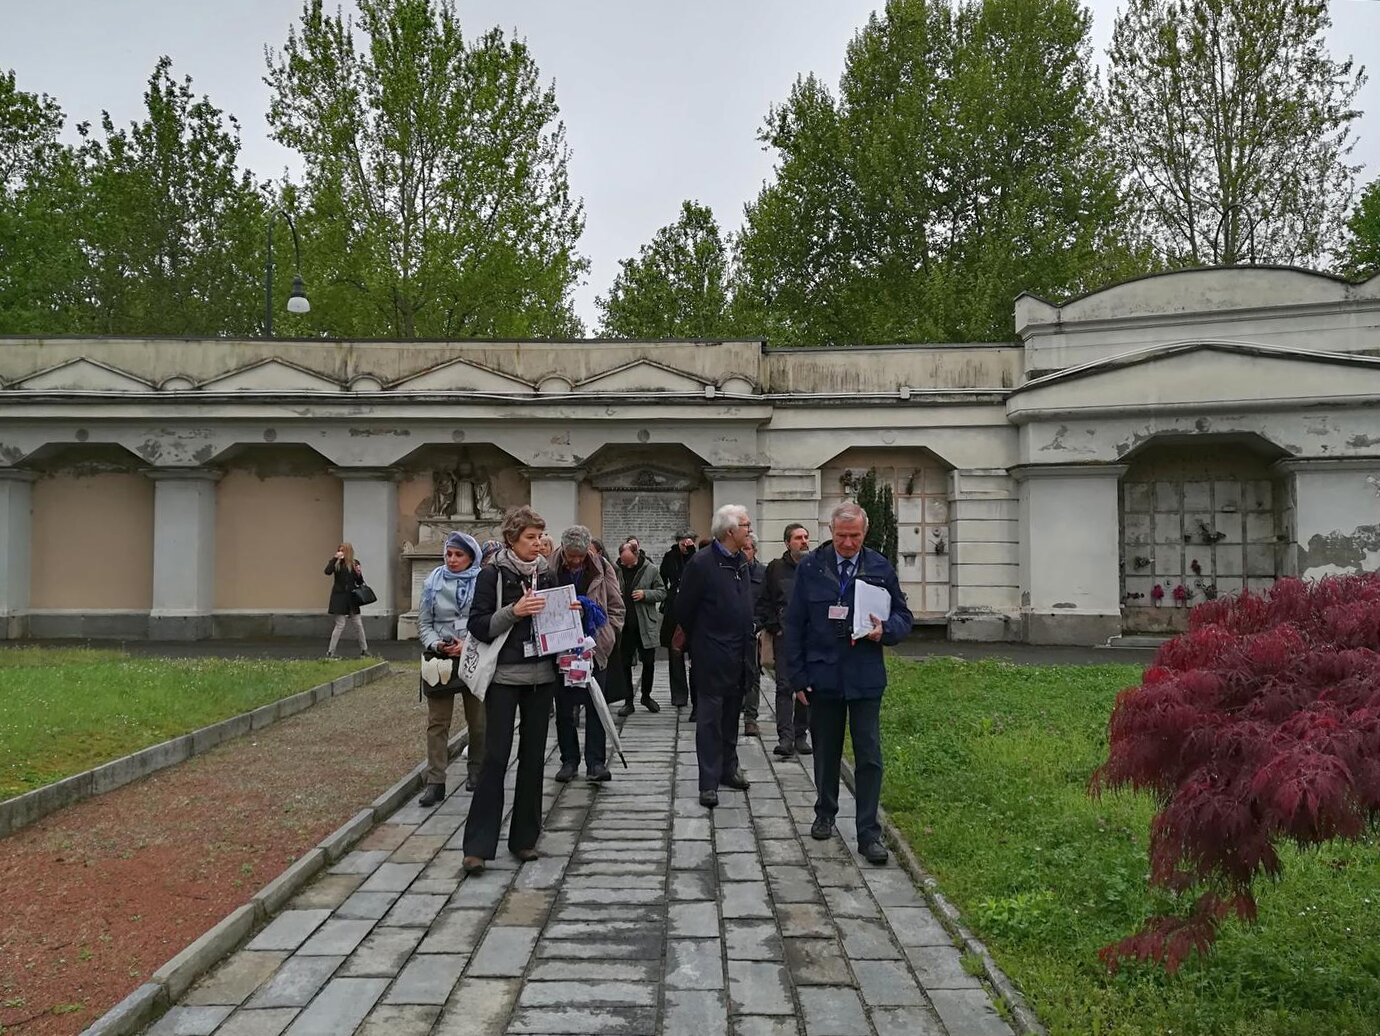 MMC3 Visit to Monumental Cimitery of Turin